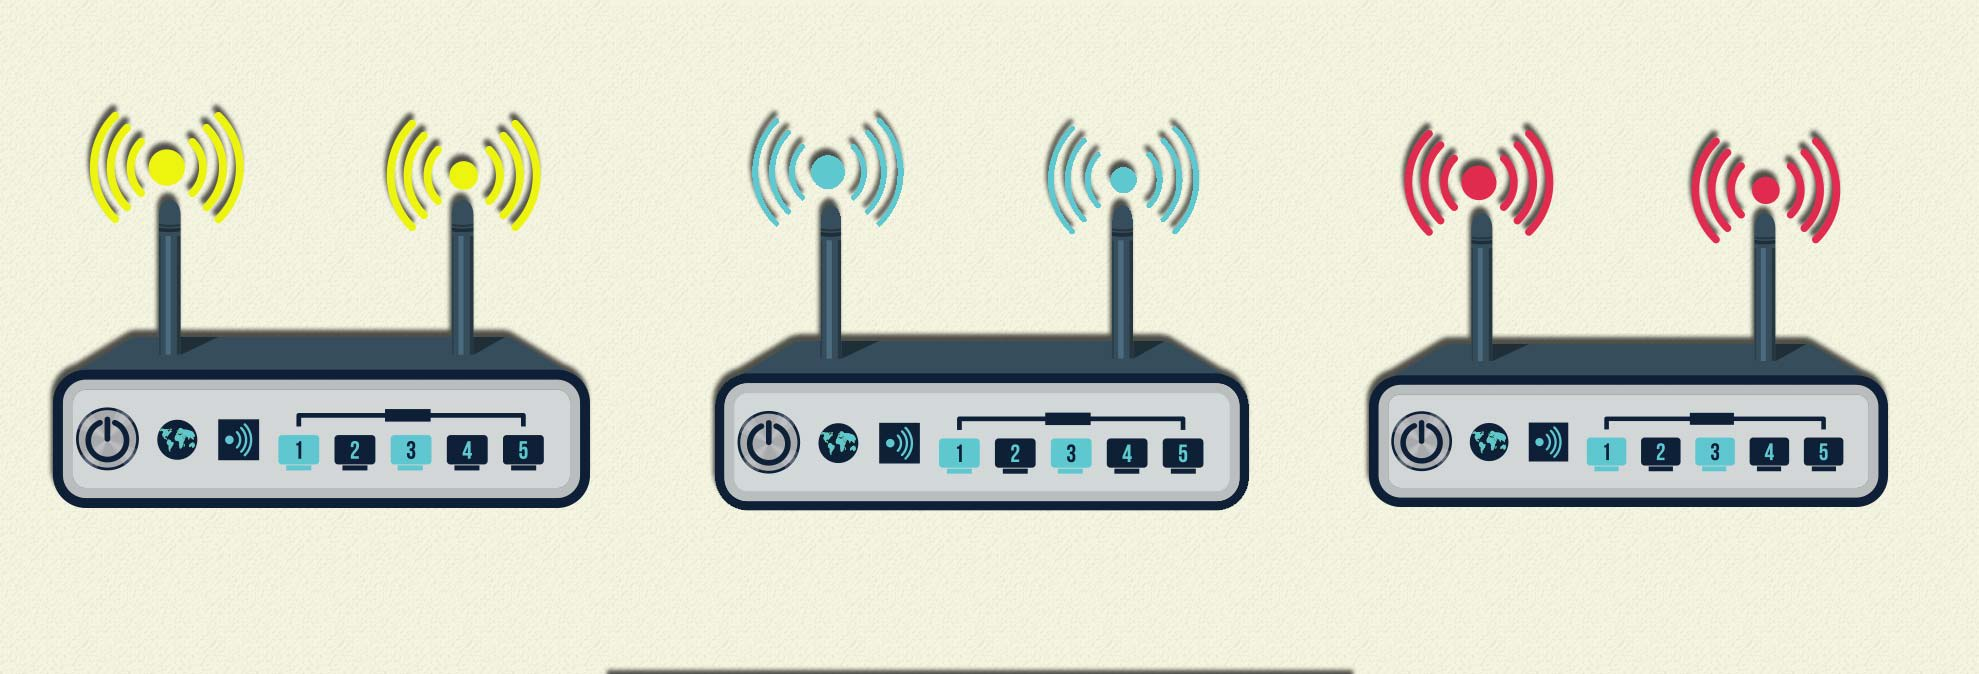 In 2018, WiFi Routers Learn New Tricks - Consumer Reports